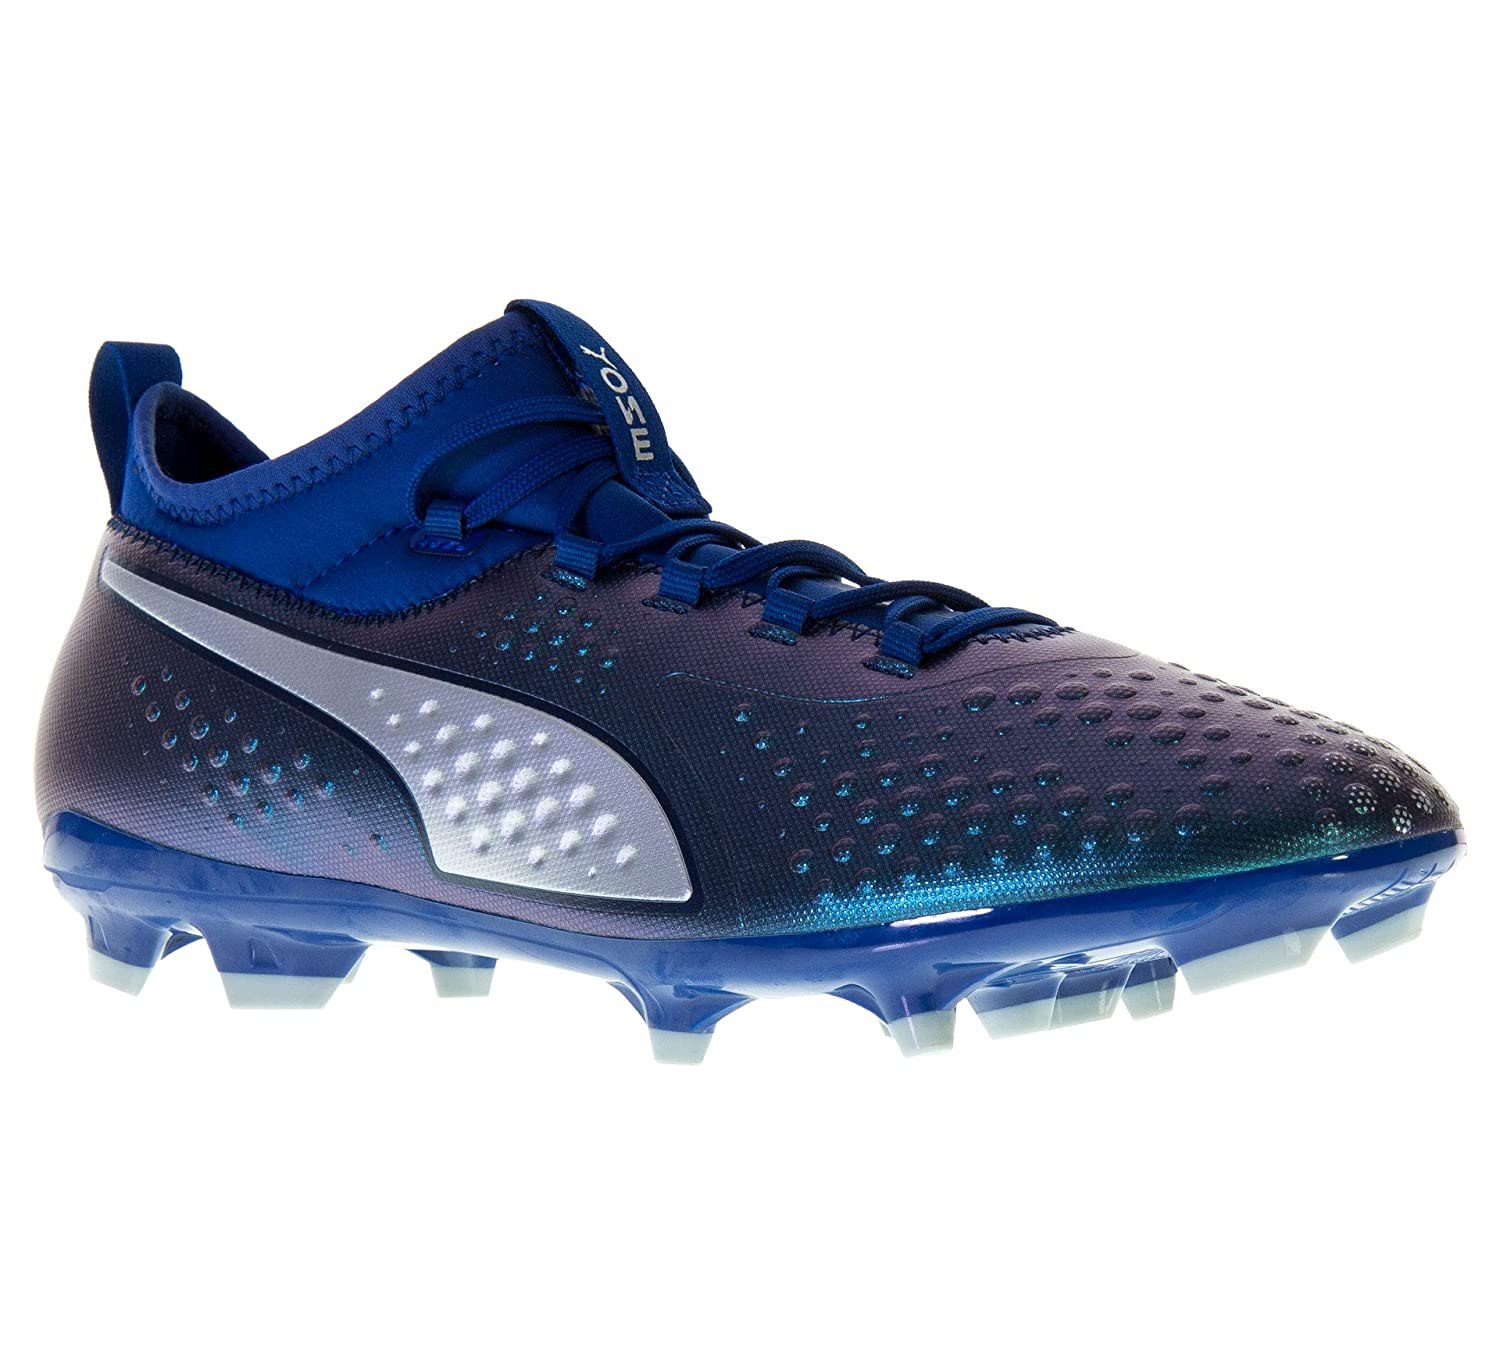 7d16c4778a7350 Puma One 3 Syn FG  Amazon.co.uk  Sports   Outdoors